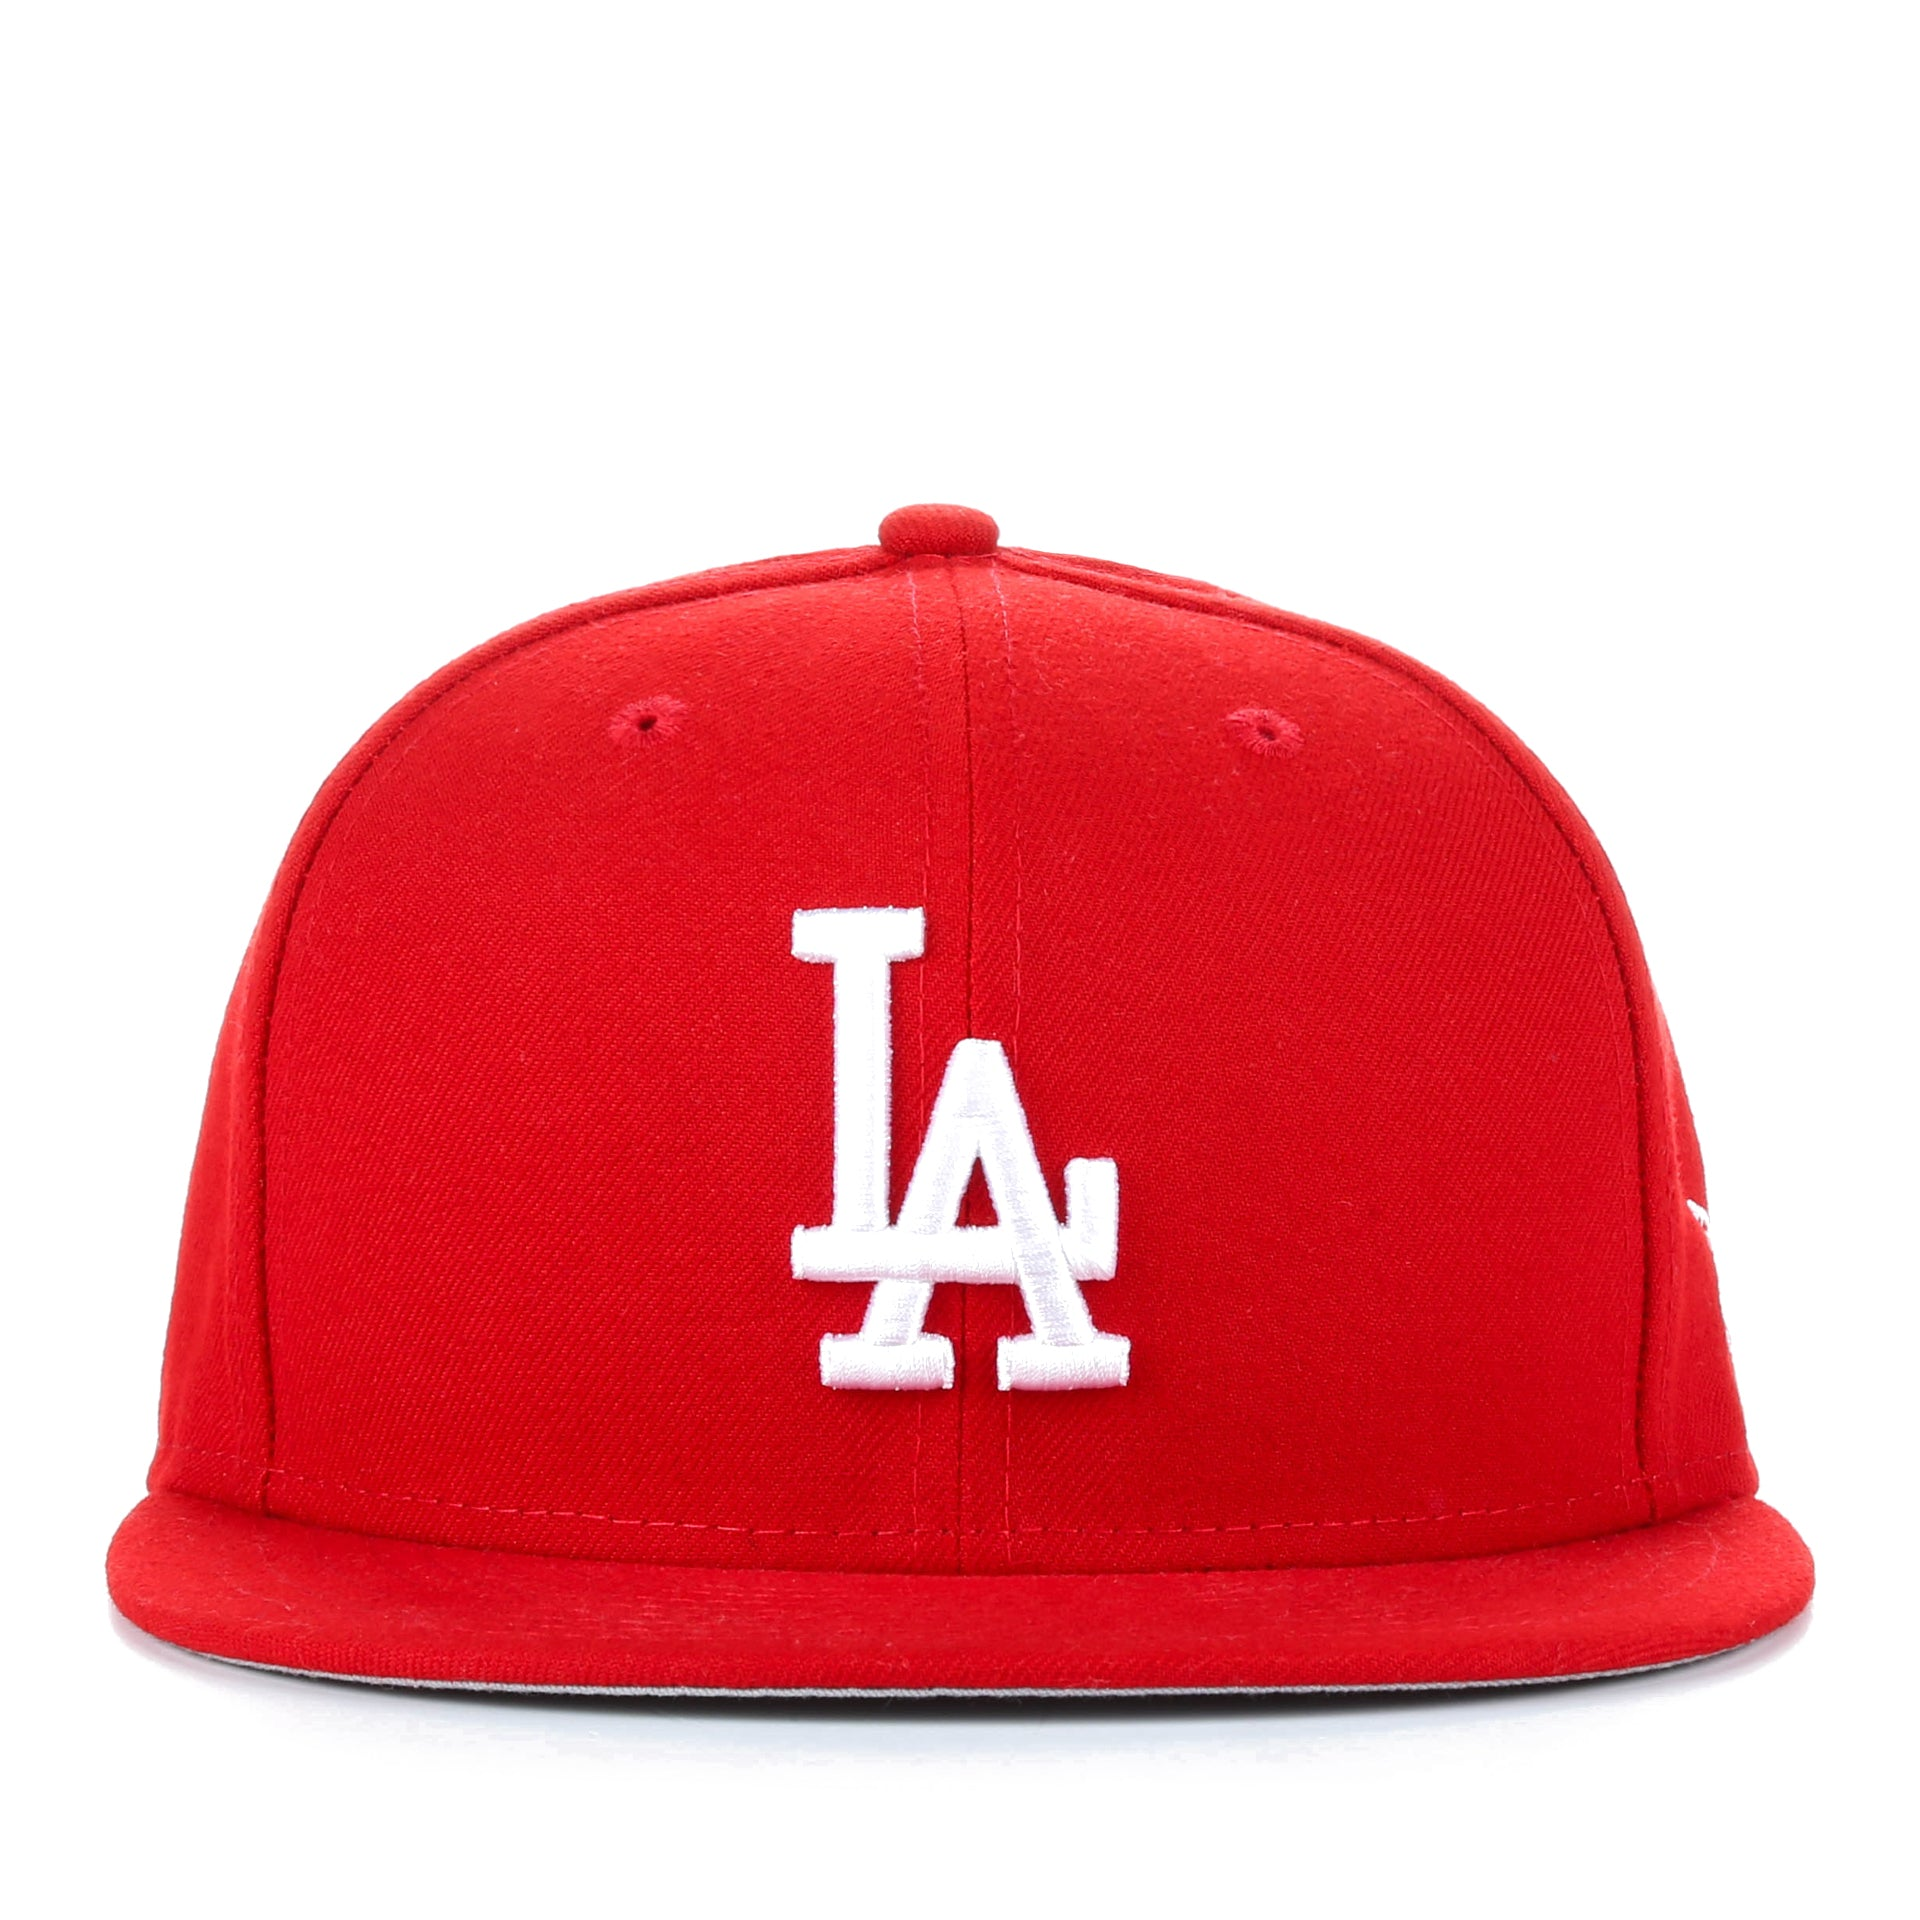 New Era 59Fifty MLB Basic Fitted Cap - Los Angeles Dodgers Red - New ... 07648a77af4